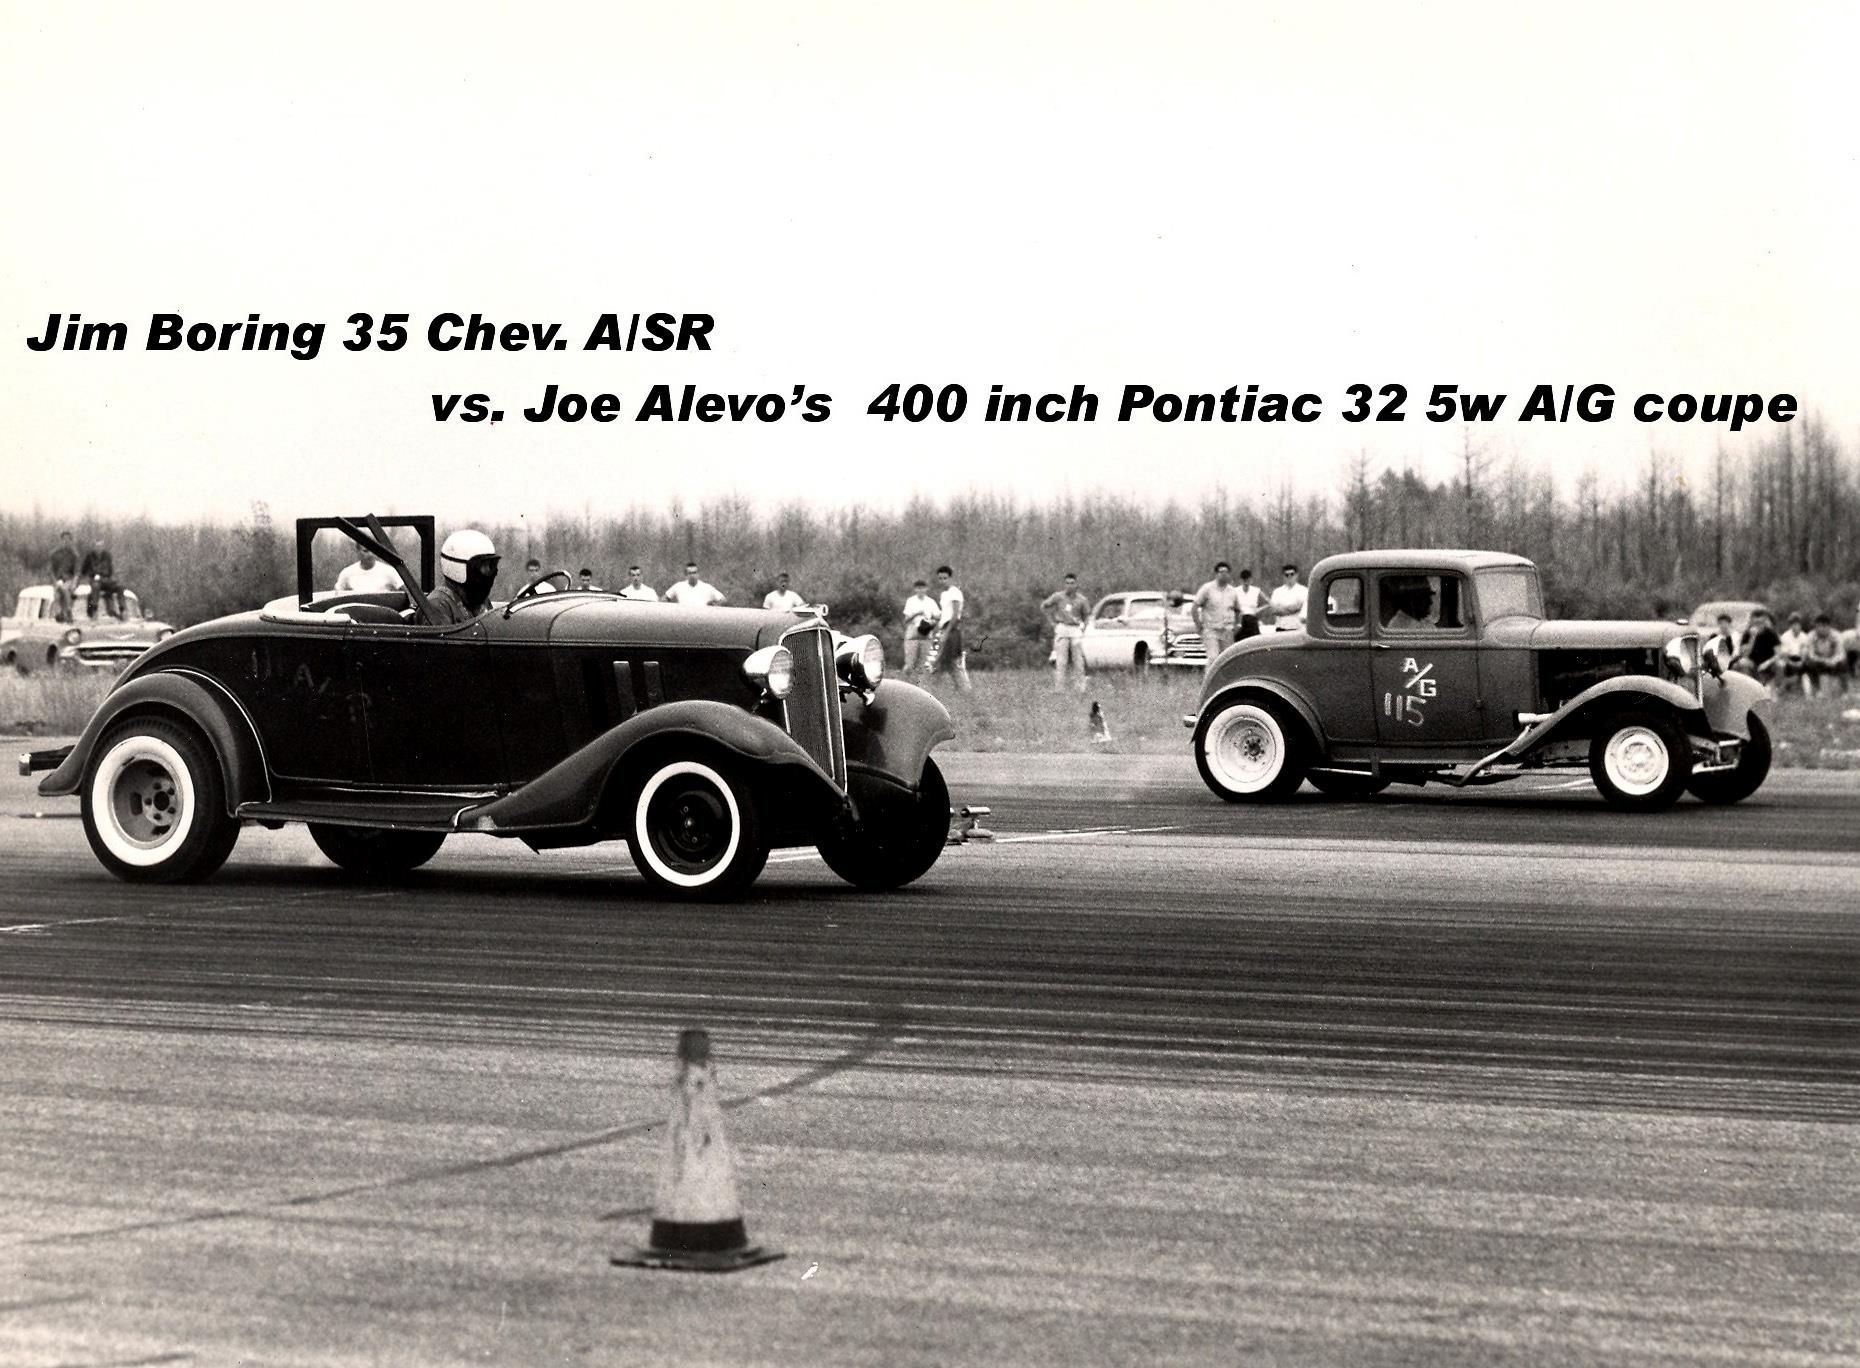 vintage drag racing | 1/4 MILE at a time | Pinterest | Photos ...